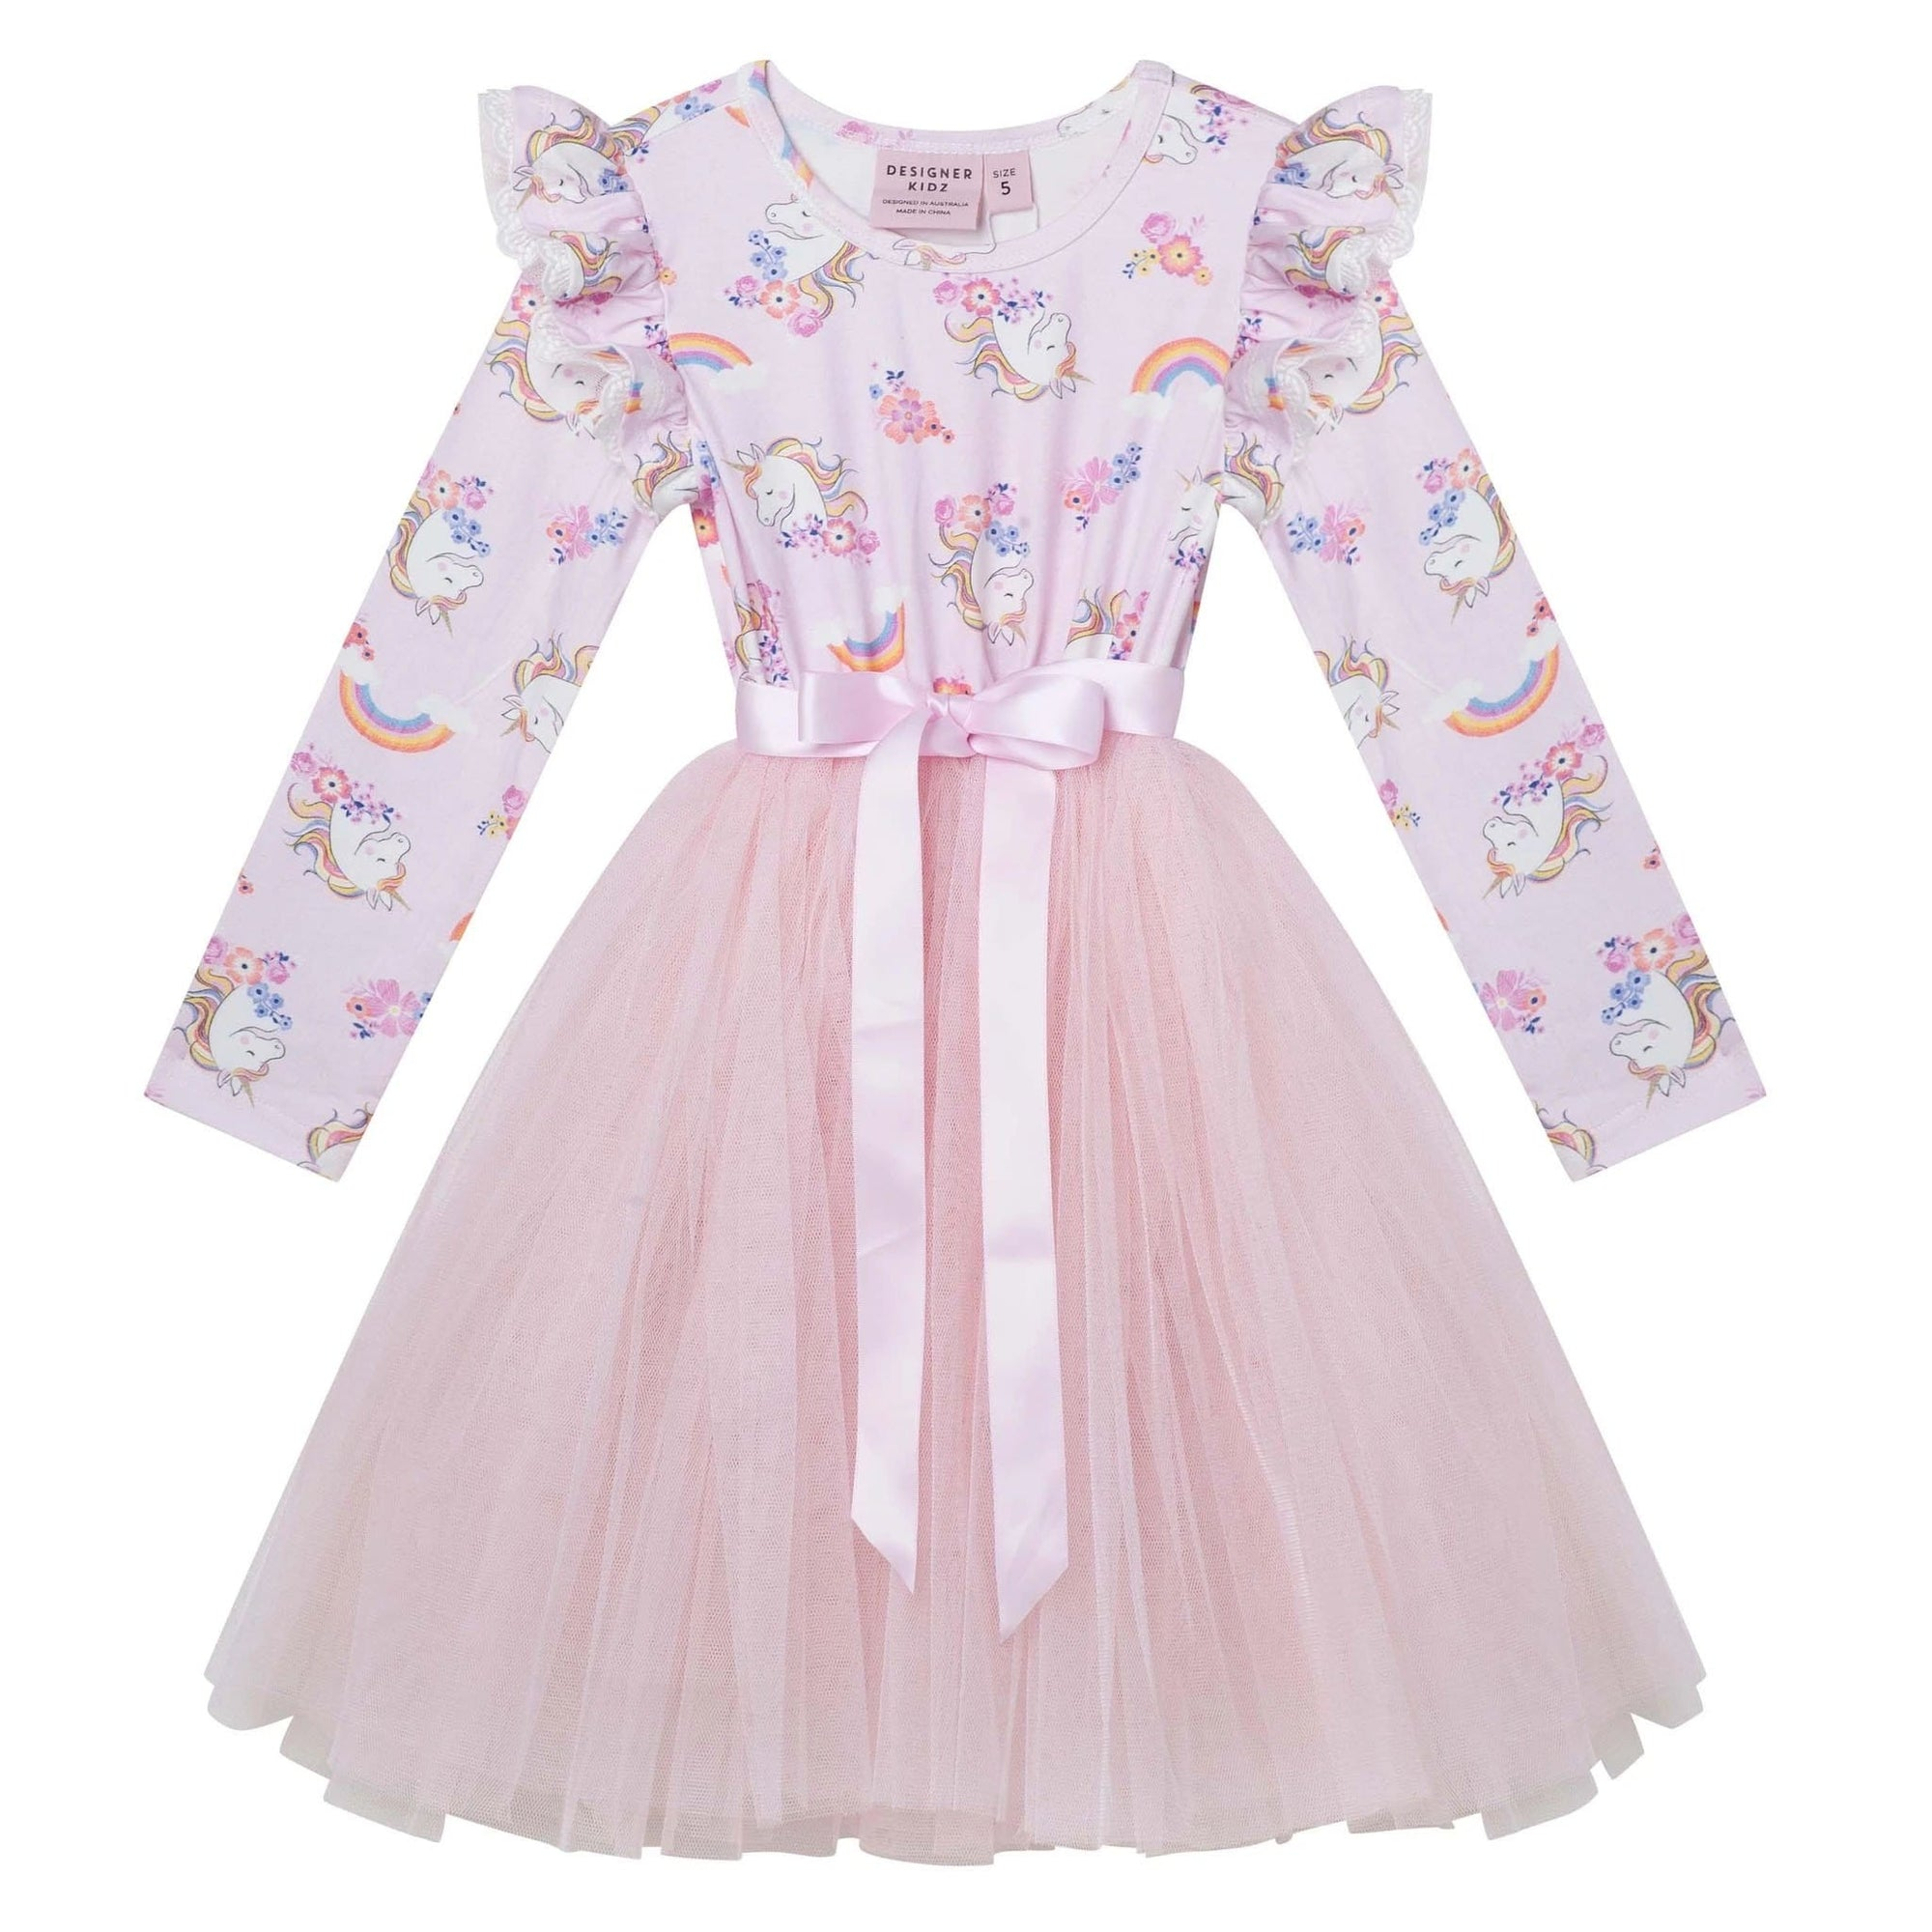 Designer Kidz Enchanted Unicorn L/S Tutu Dress (5263015641241)